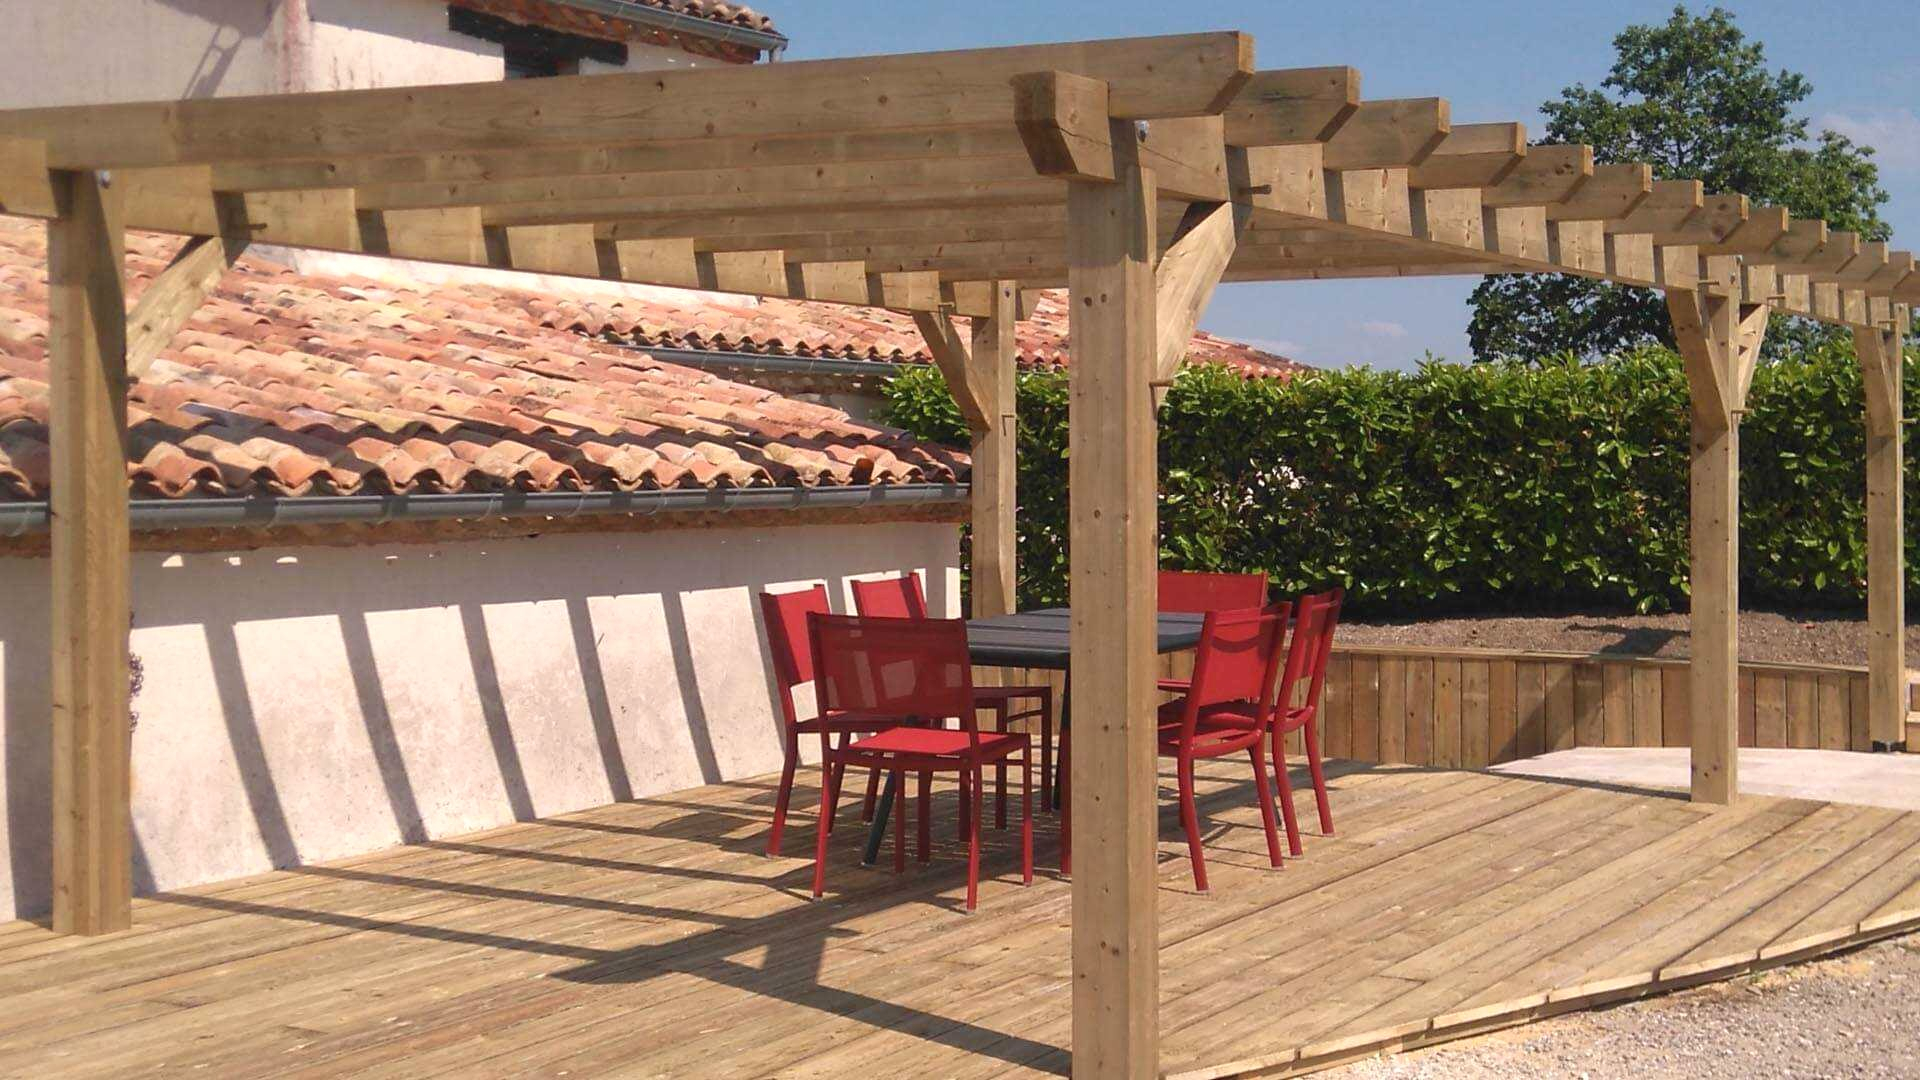 Kit Terrasse Bois Pergola Aluminio Leroy Merlin Trendy Perfect Tonnelle En Idees Conception Jardin Idees Conception Jardin